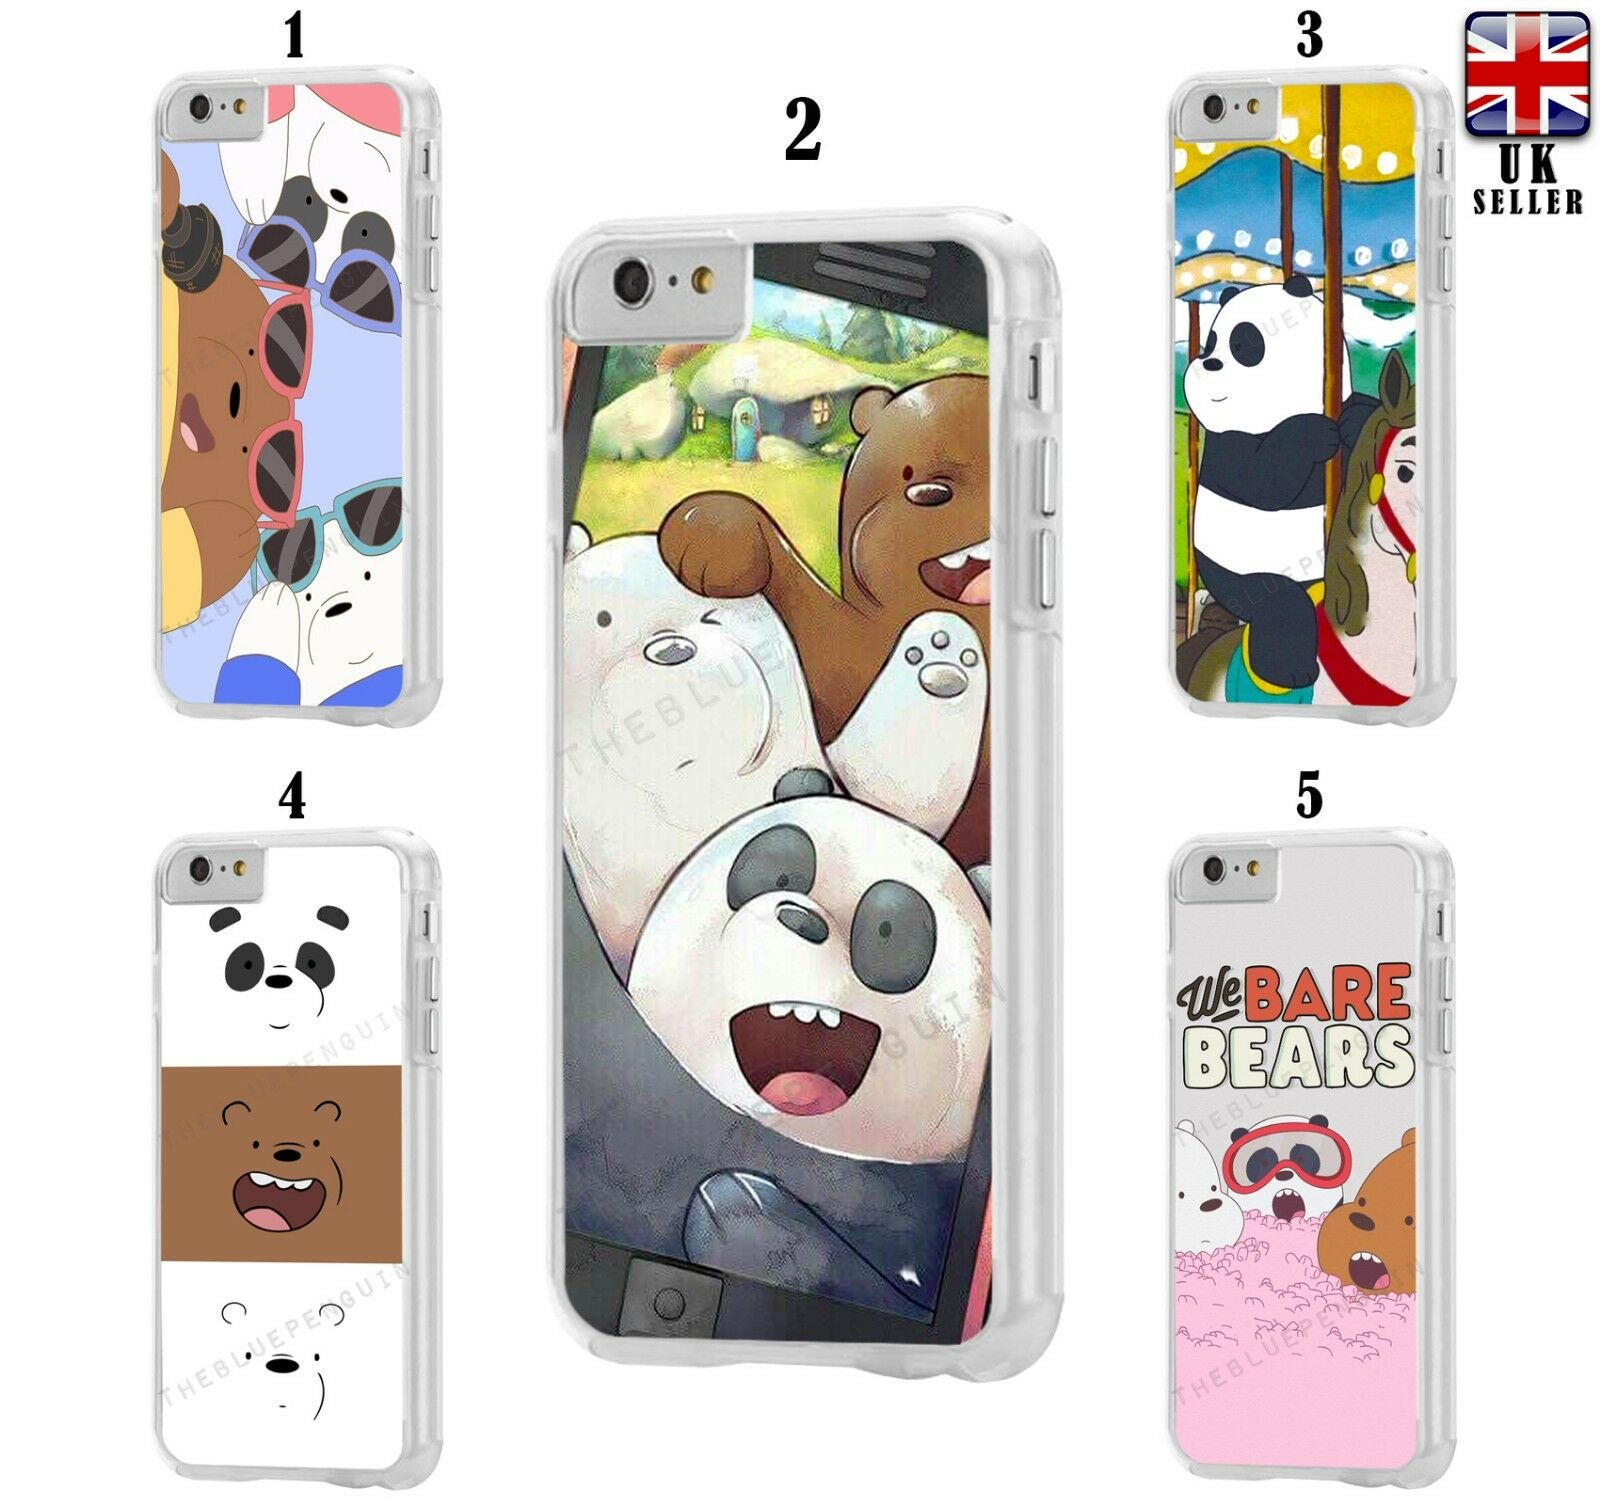 We Bare Bears Cartoon Cute Case For Apple Ipod Touch 5th 6th 7th Generation Ebay